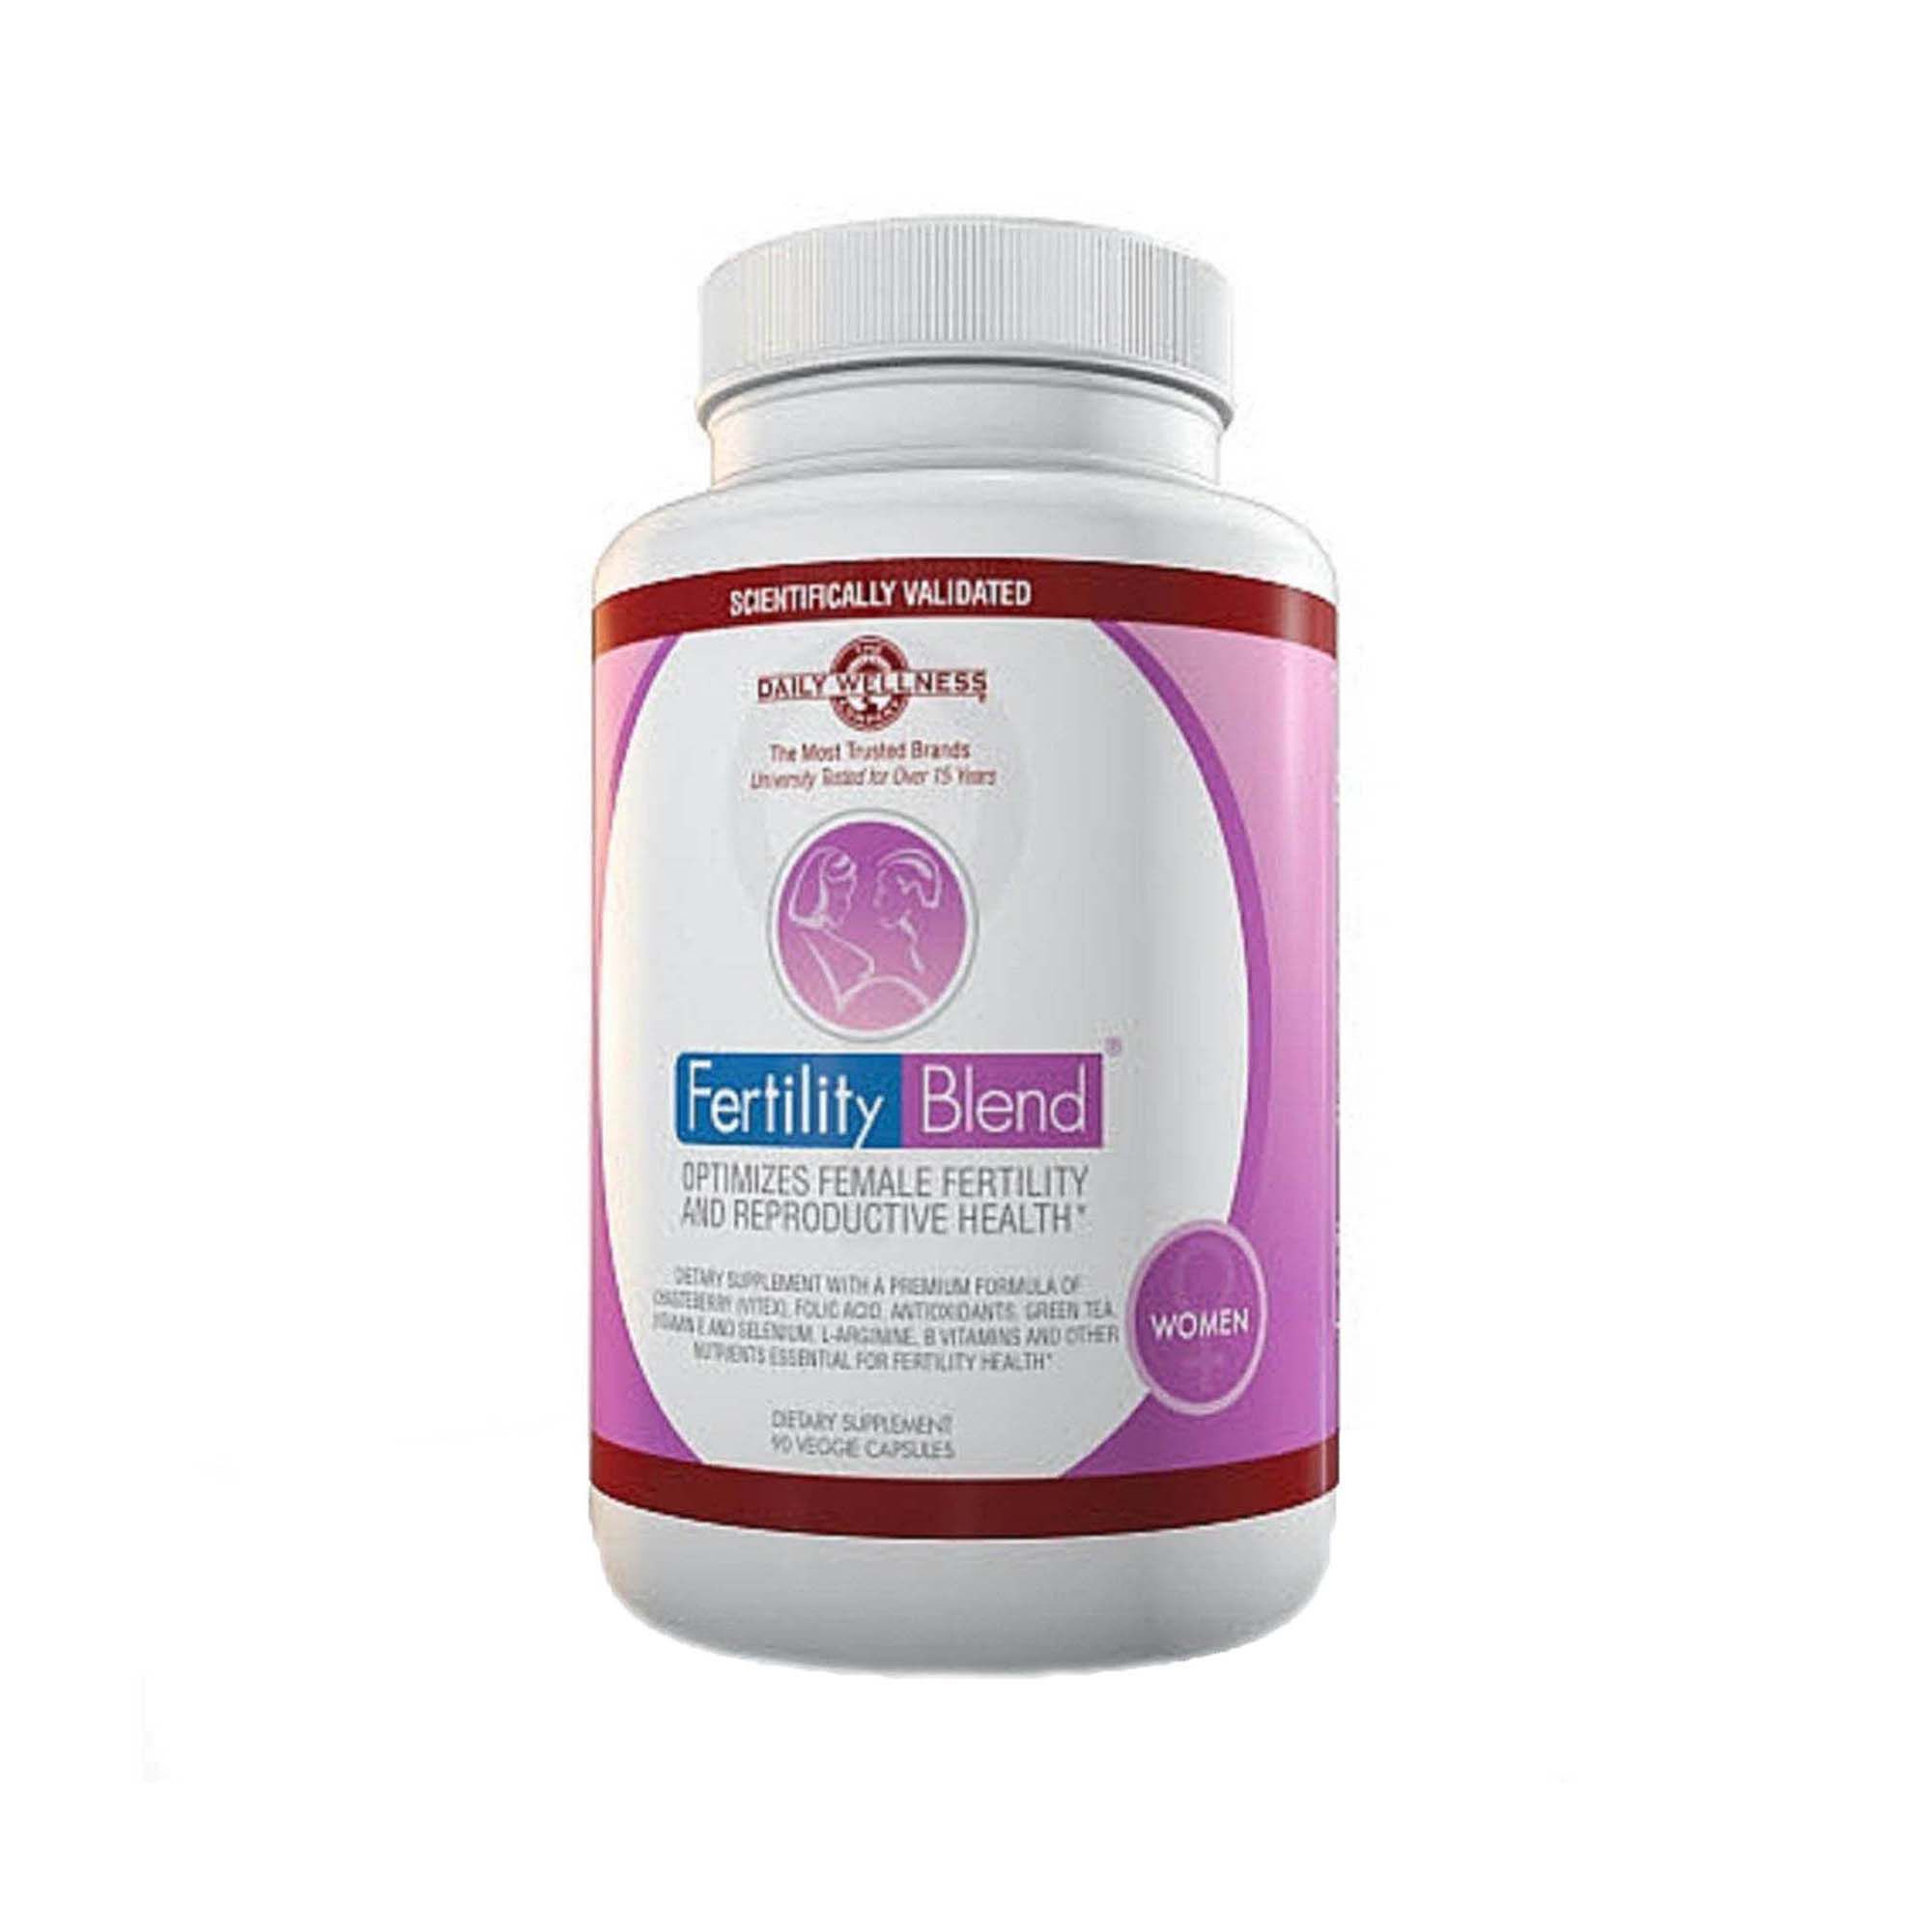 Daily Wellness Company® Fertility Blend™ for Women